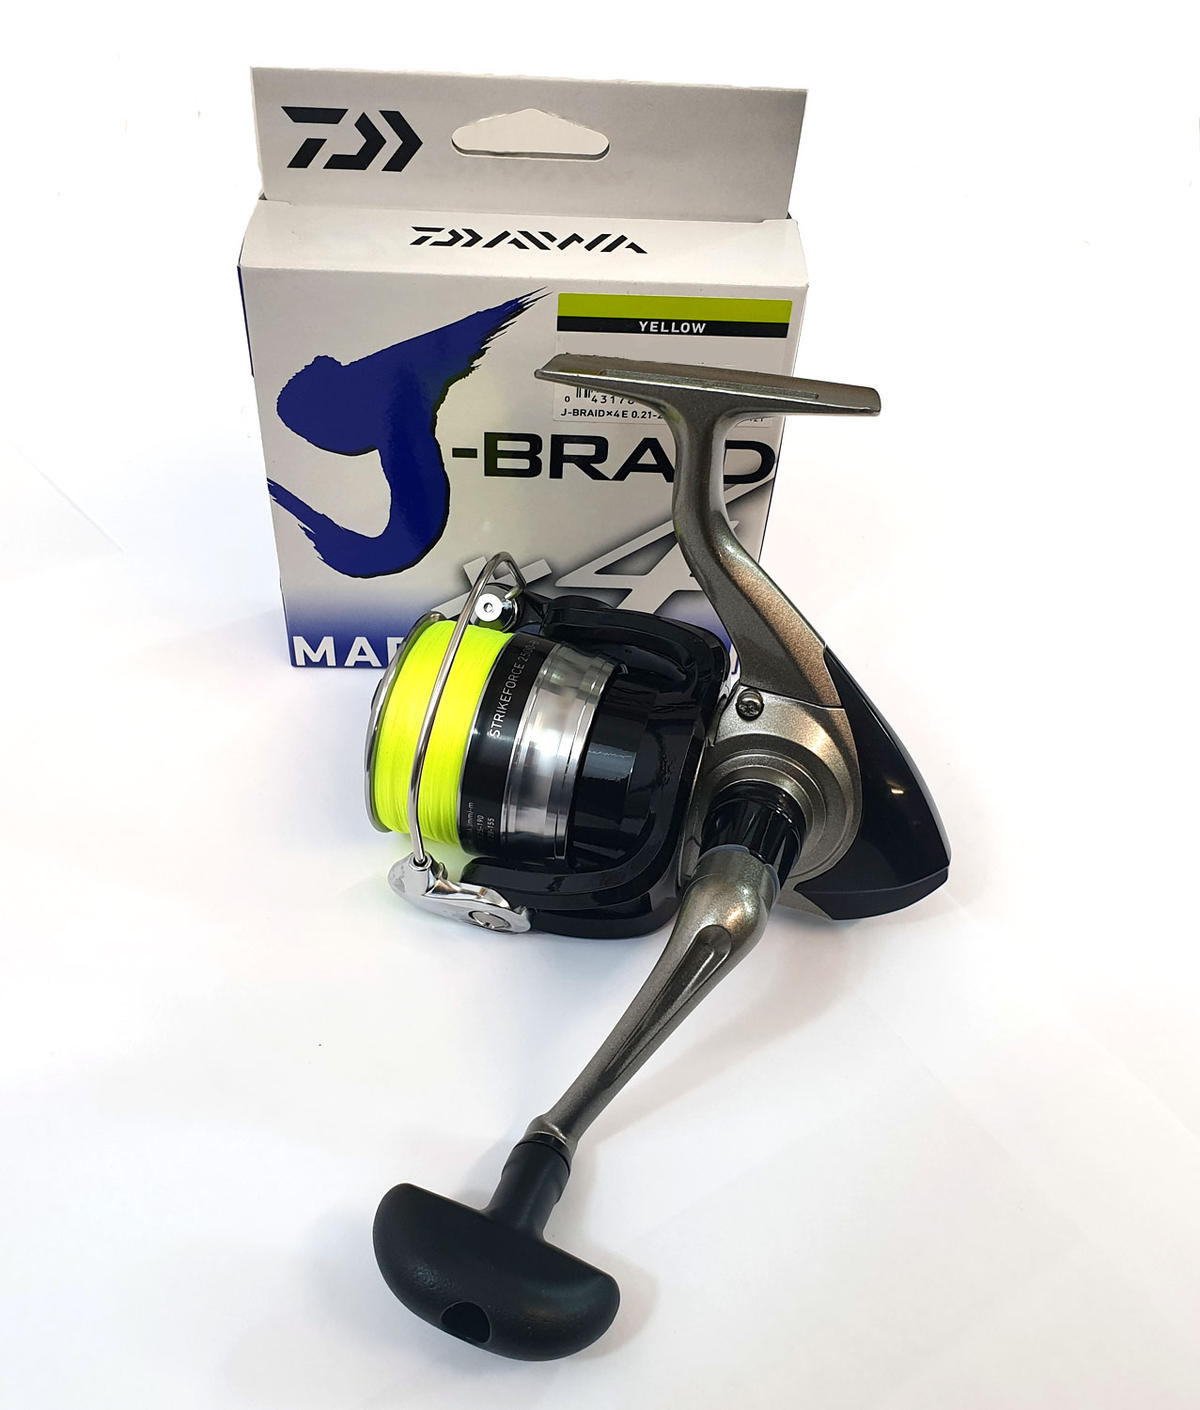 Special Offer Daiwa Strikeforce 2500 Spinning Reel Fully Loaded with J-Braid X4